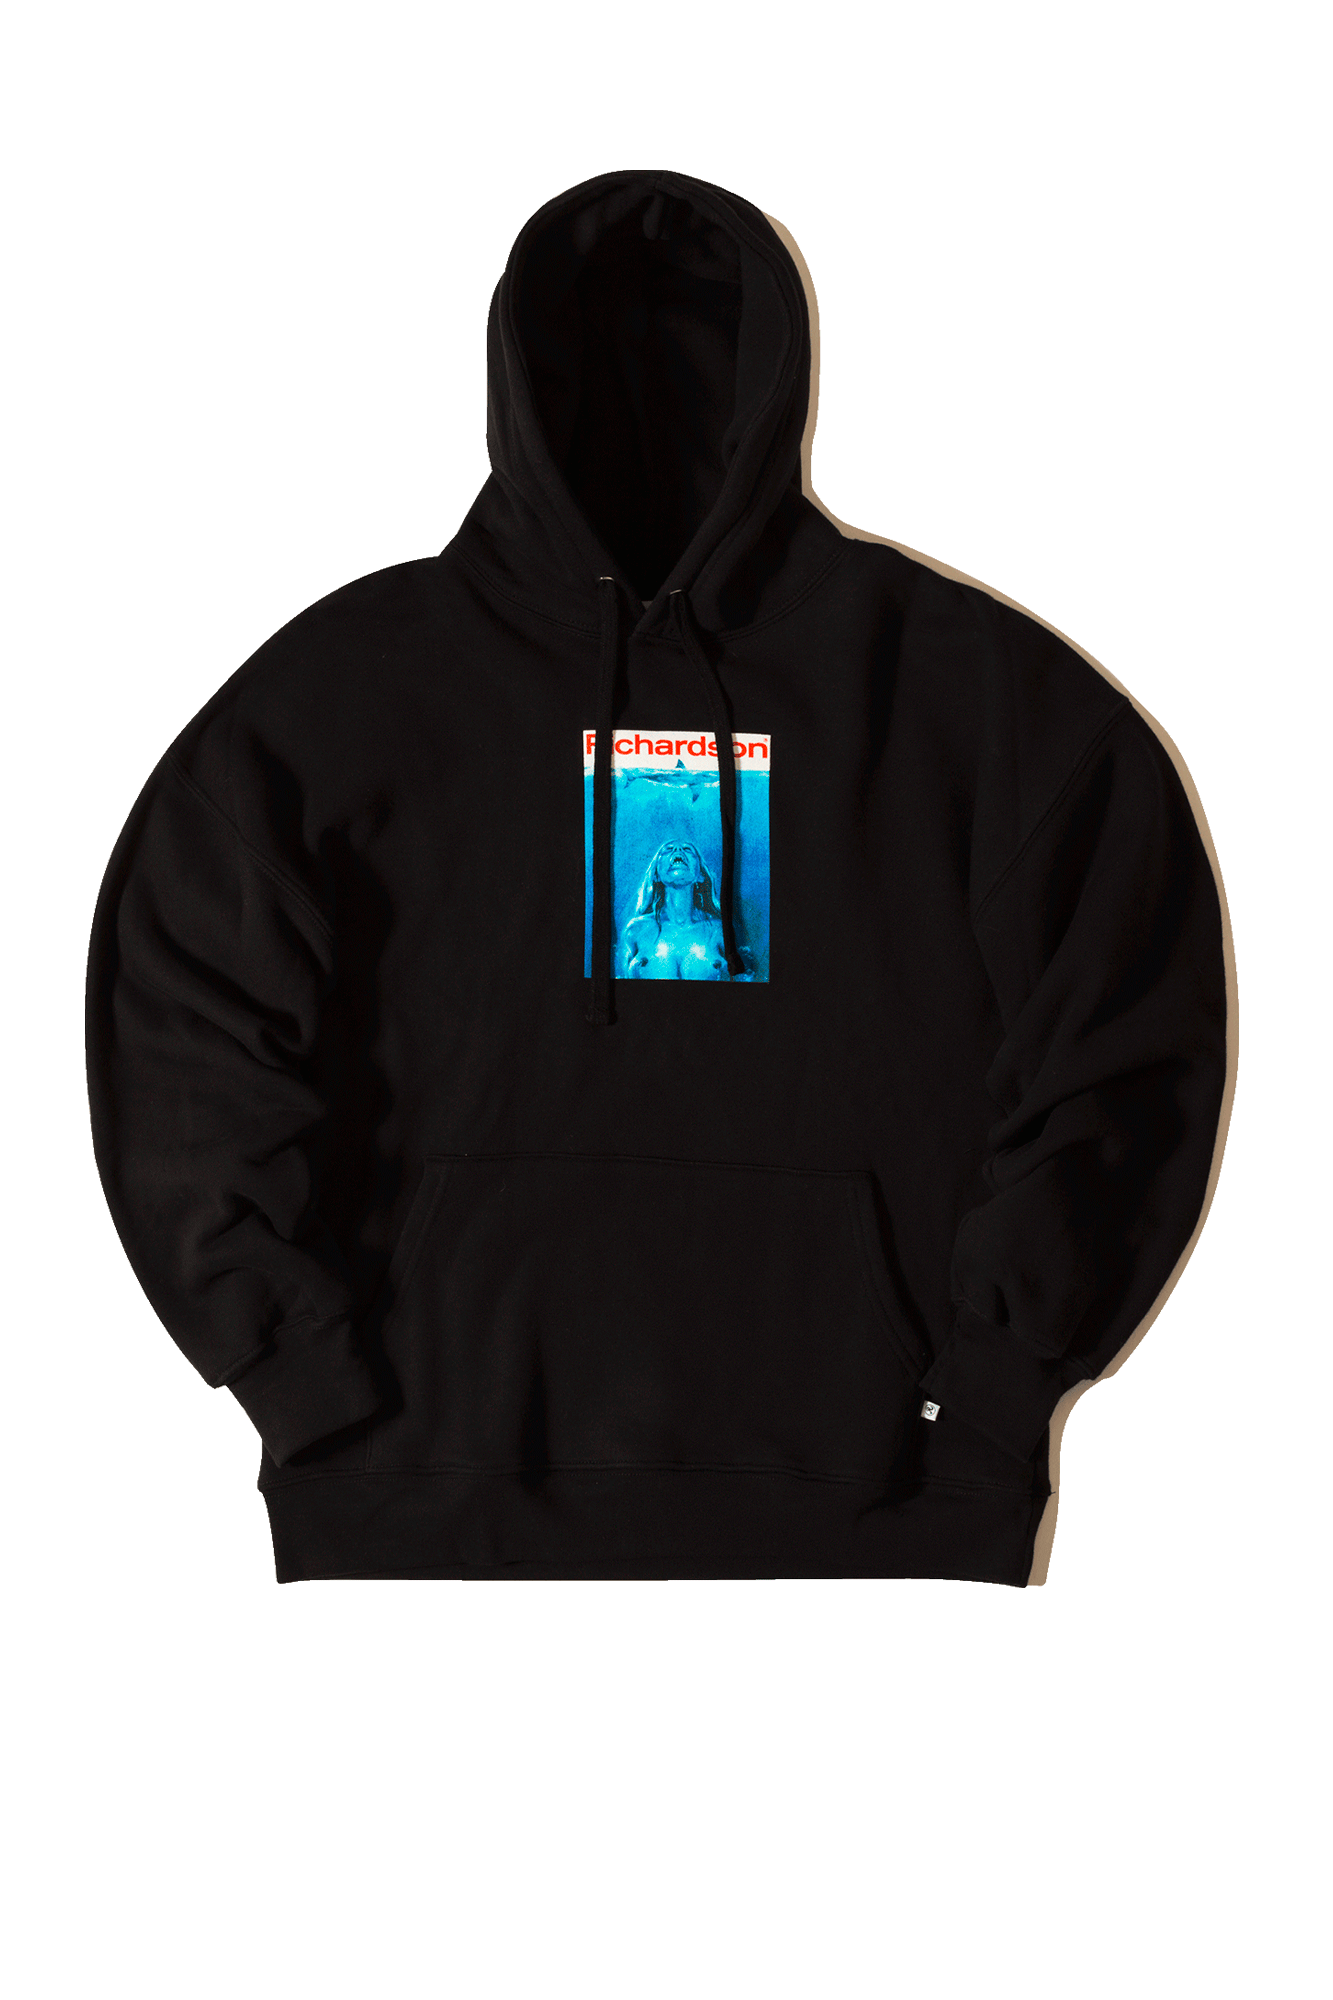 Richardson Mag Sweaters Jaws Hoodie x FUCT Black FUCT004#000#BLACK#S - One Block Down